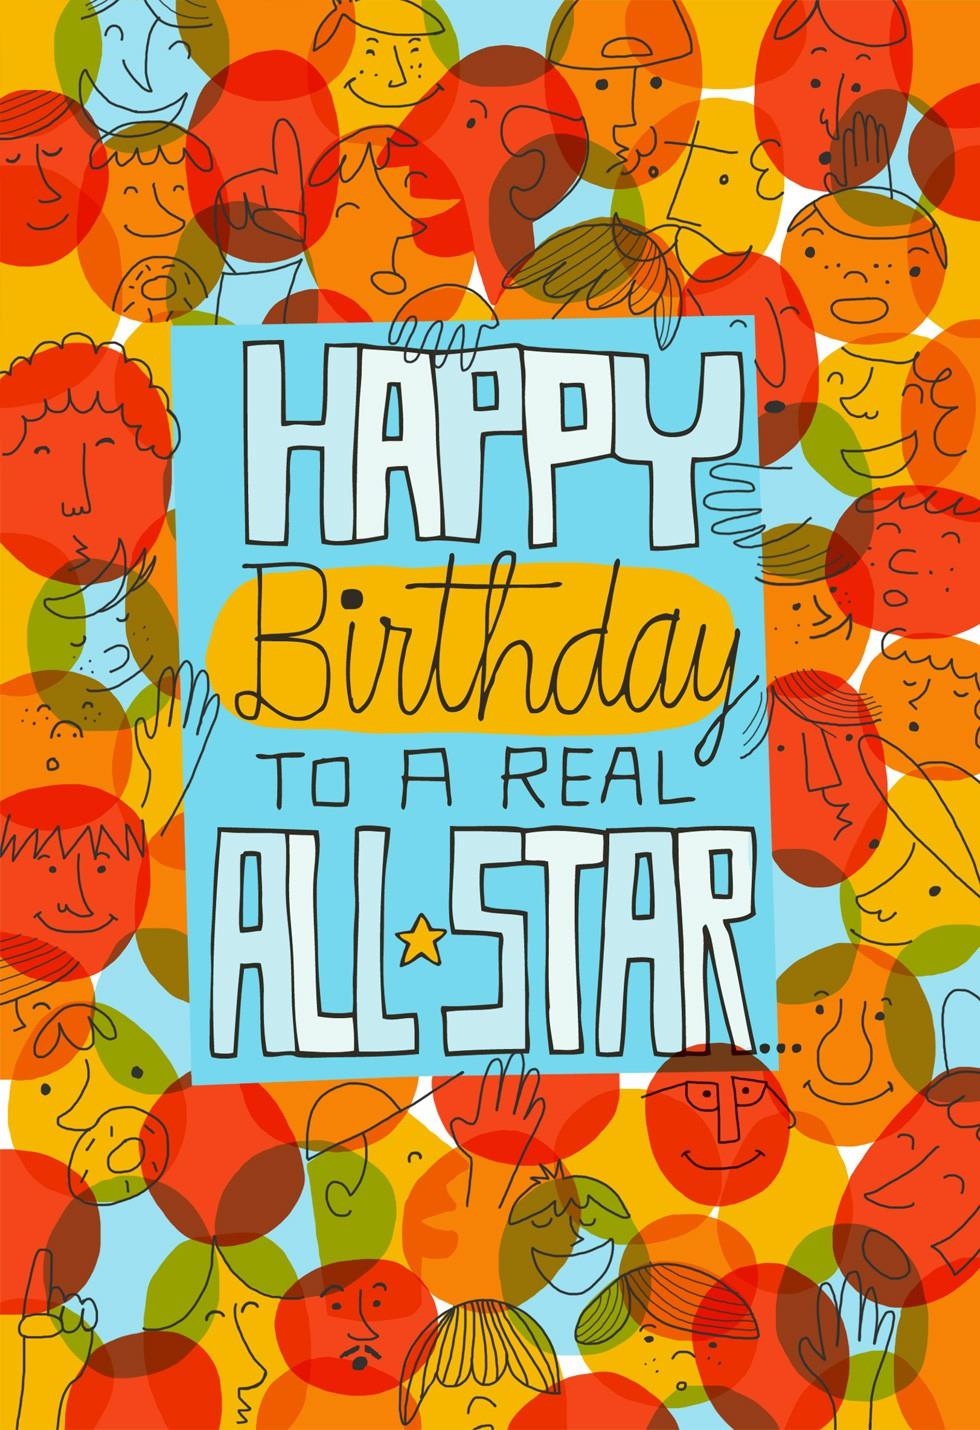 All star pop up musical birthday card greeting cards hallmark all star pop up musical birthday card bookmarktalkfo Images